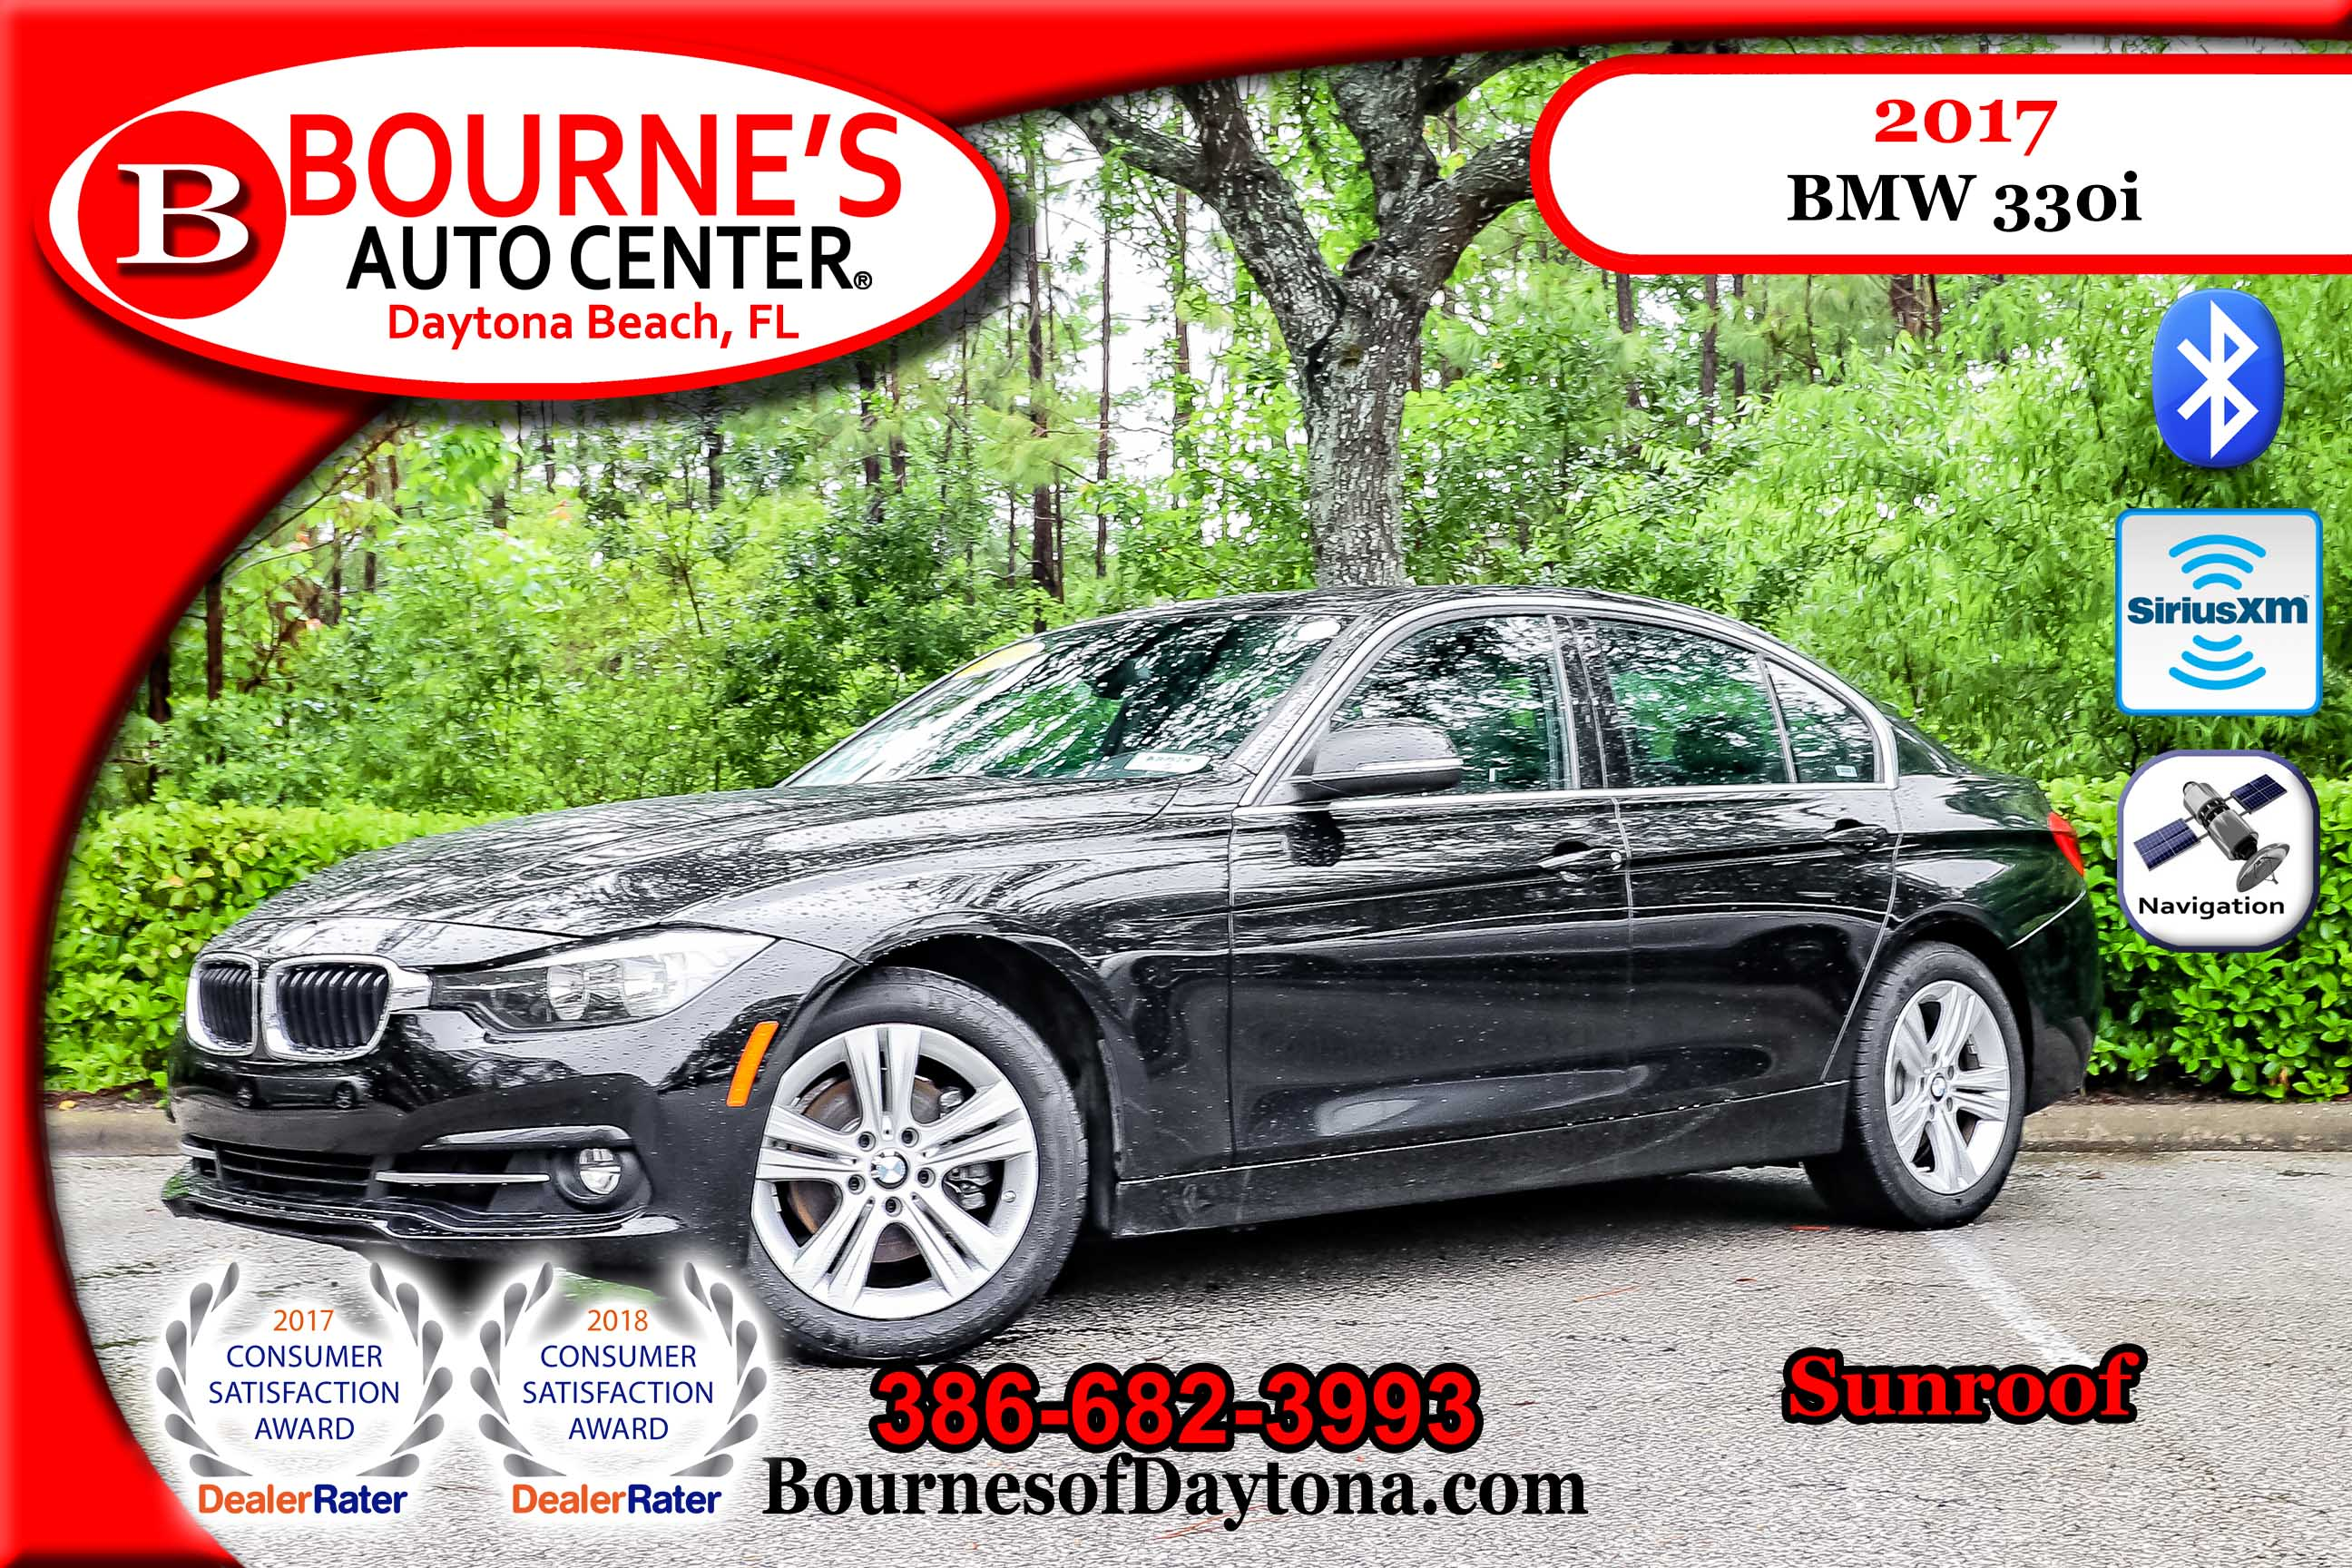 2017 BMW 330i Sunroof/ Nav/ XM/ Leather Sedan